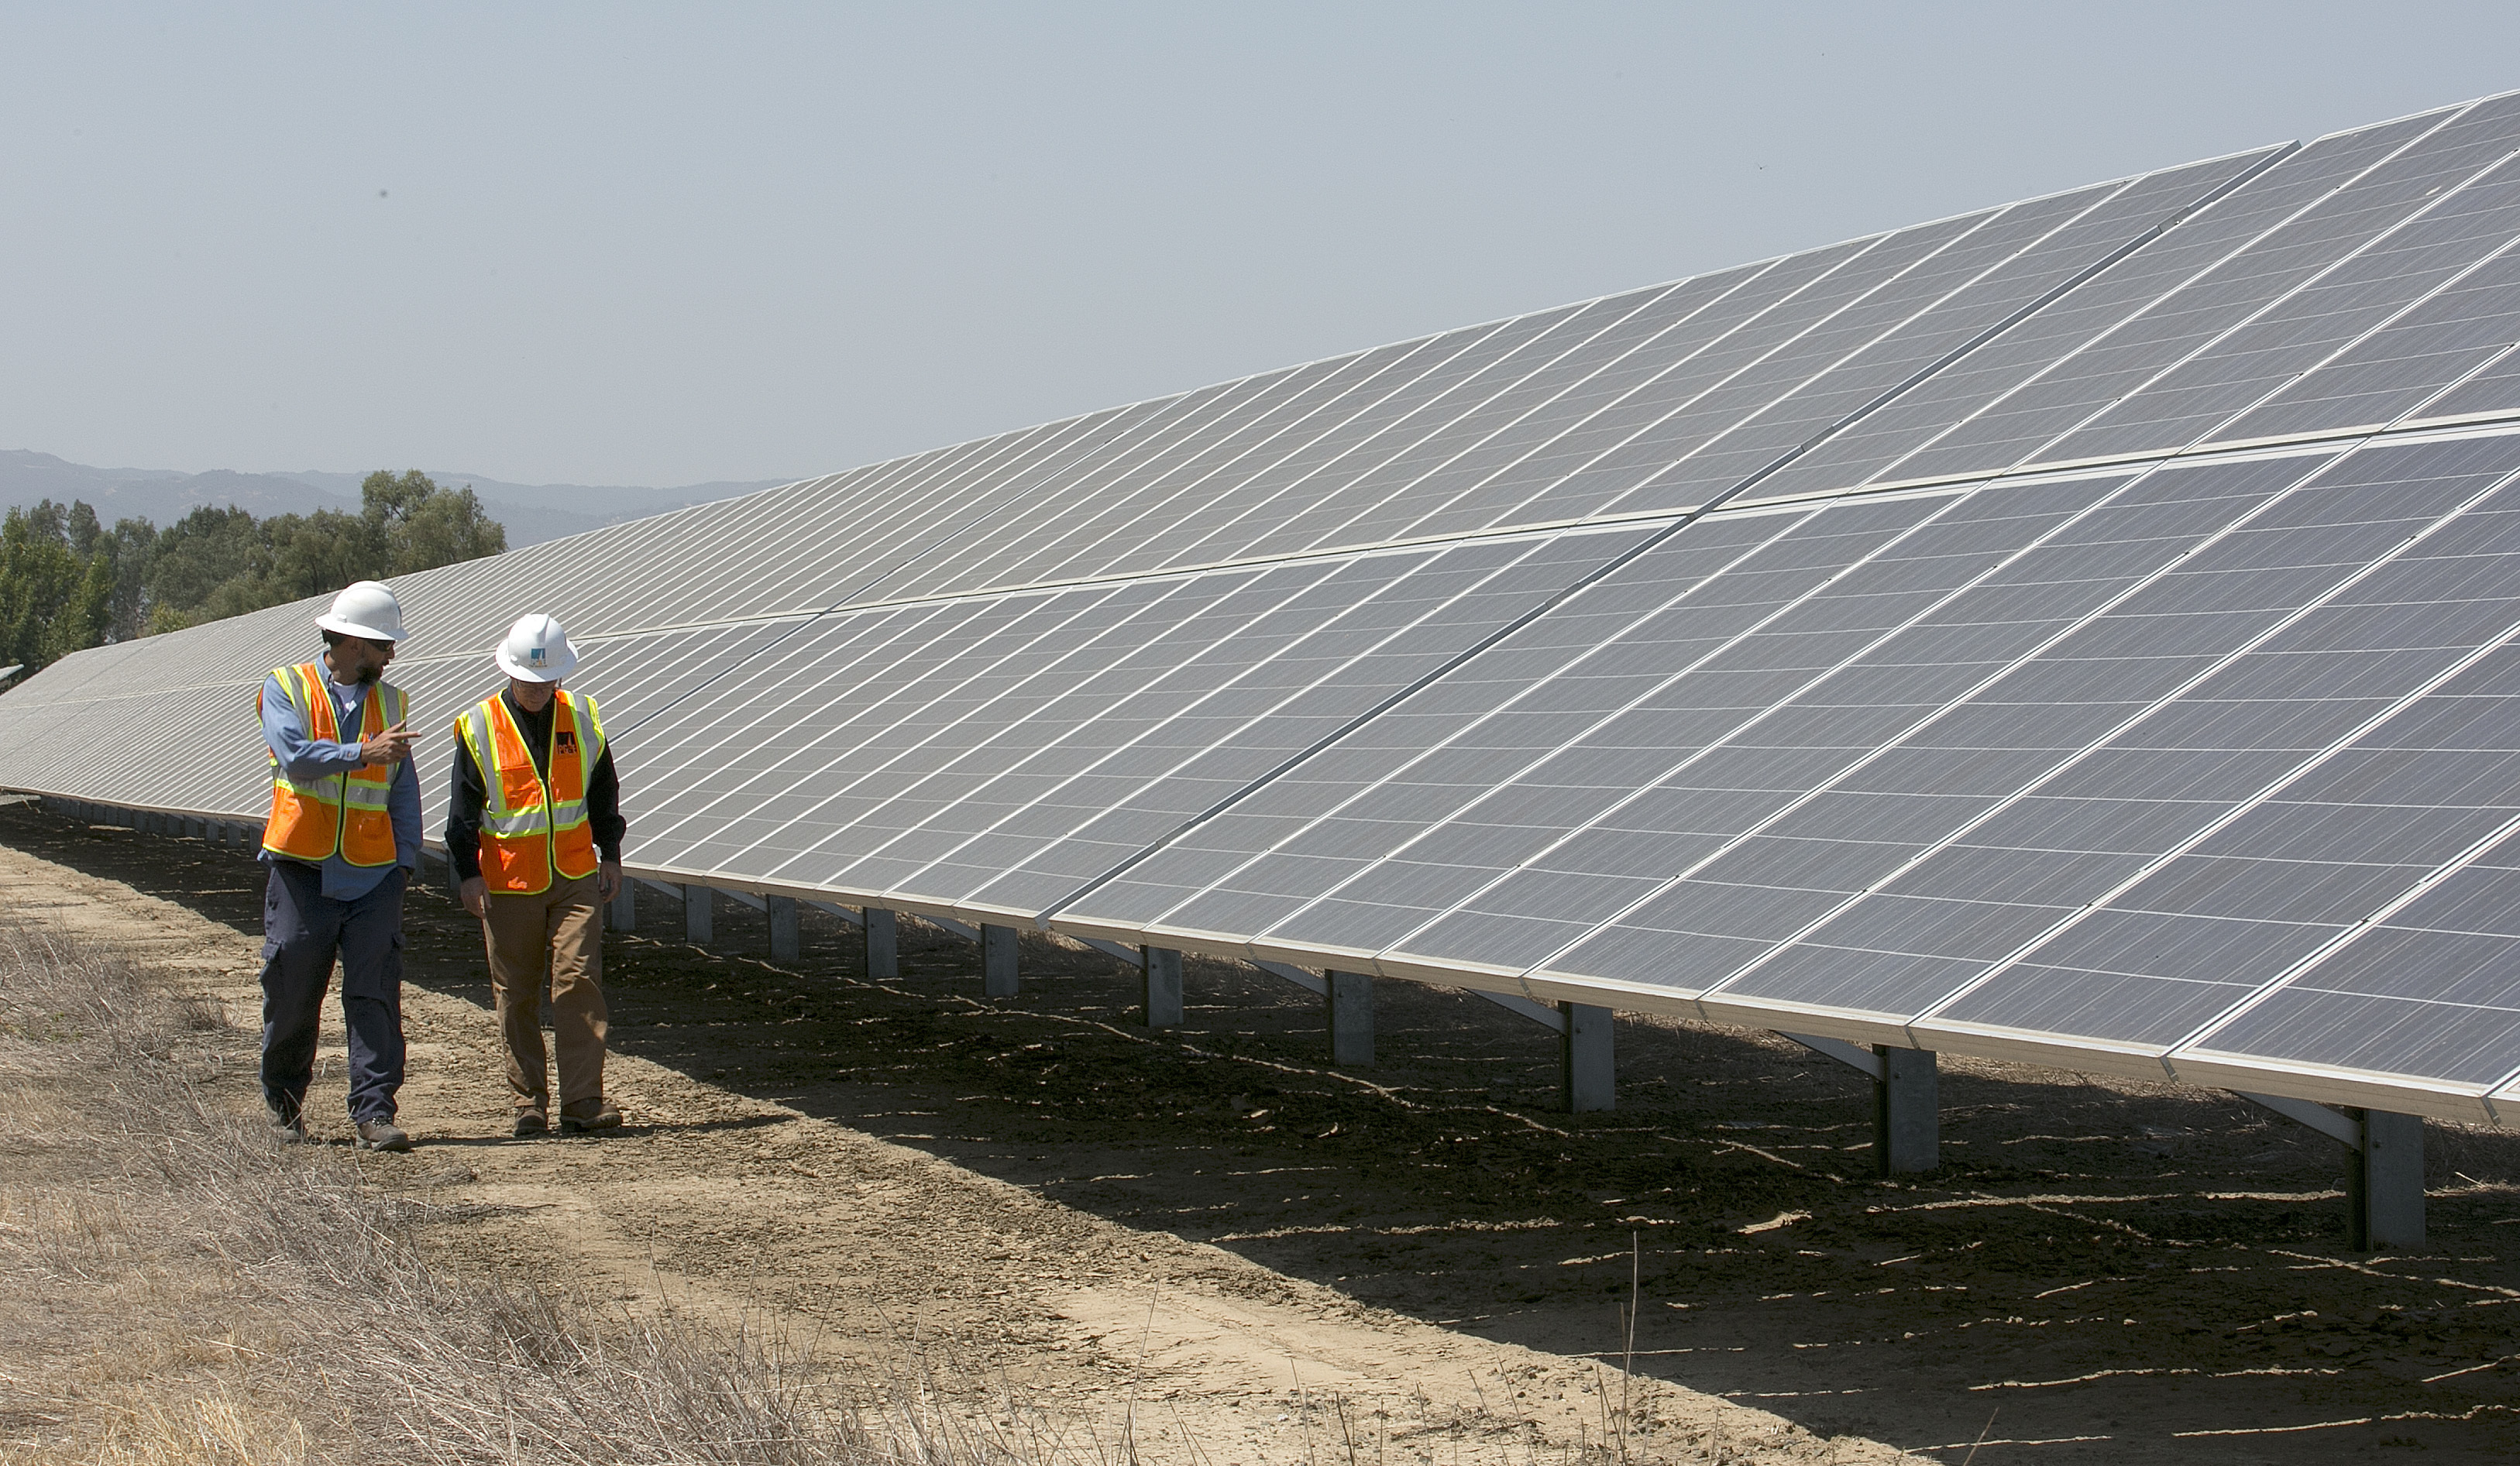 Eclipse Solar Energy-2 In this Thursday, Aug. 17, 2017 photo, Solar Tech Joshua Valdez, left, and Senior Plant ManagerTim Wisdom walk past solar panels at a Pacific Gas and Electric Solar Plant, in Dixon, Calif. Power grid managers say they've been preparing extensively for more than a year for this Monday's solar eclipse and that by ramping up other sources of power, mainly hydroelectric and natural gas, they are confident nobody will lose power or see a spike in energy prices. (AP Photo/Rich Pedroncelli)